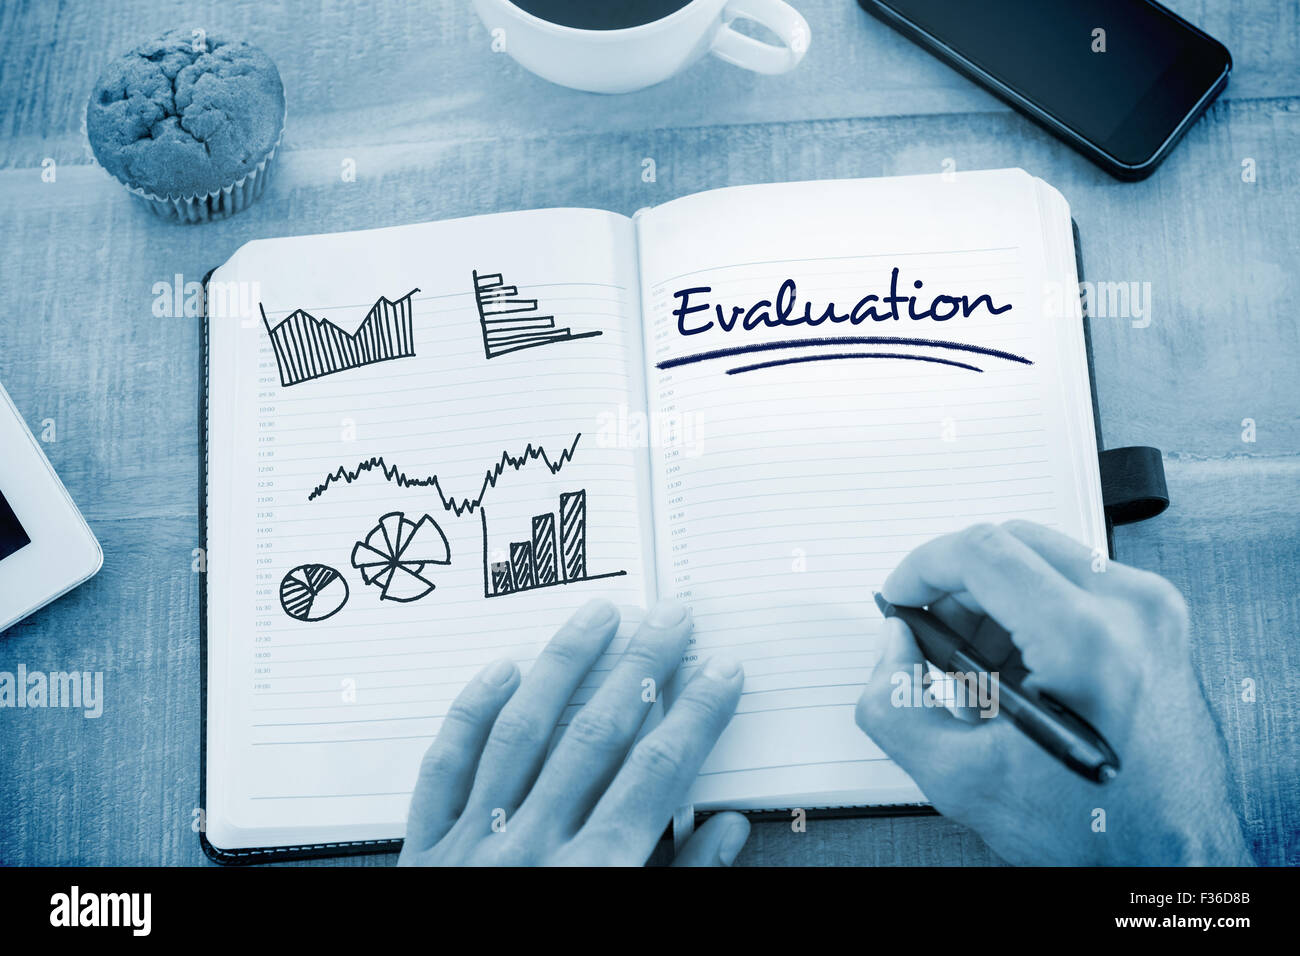 Evaluation  against business graphs - Stock Image